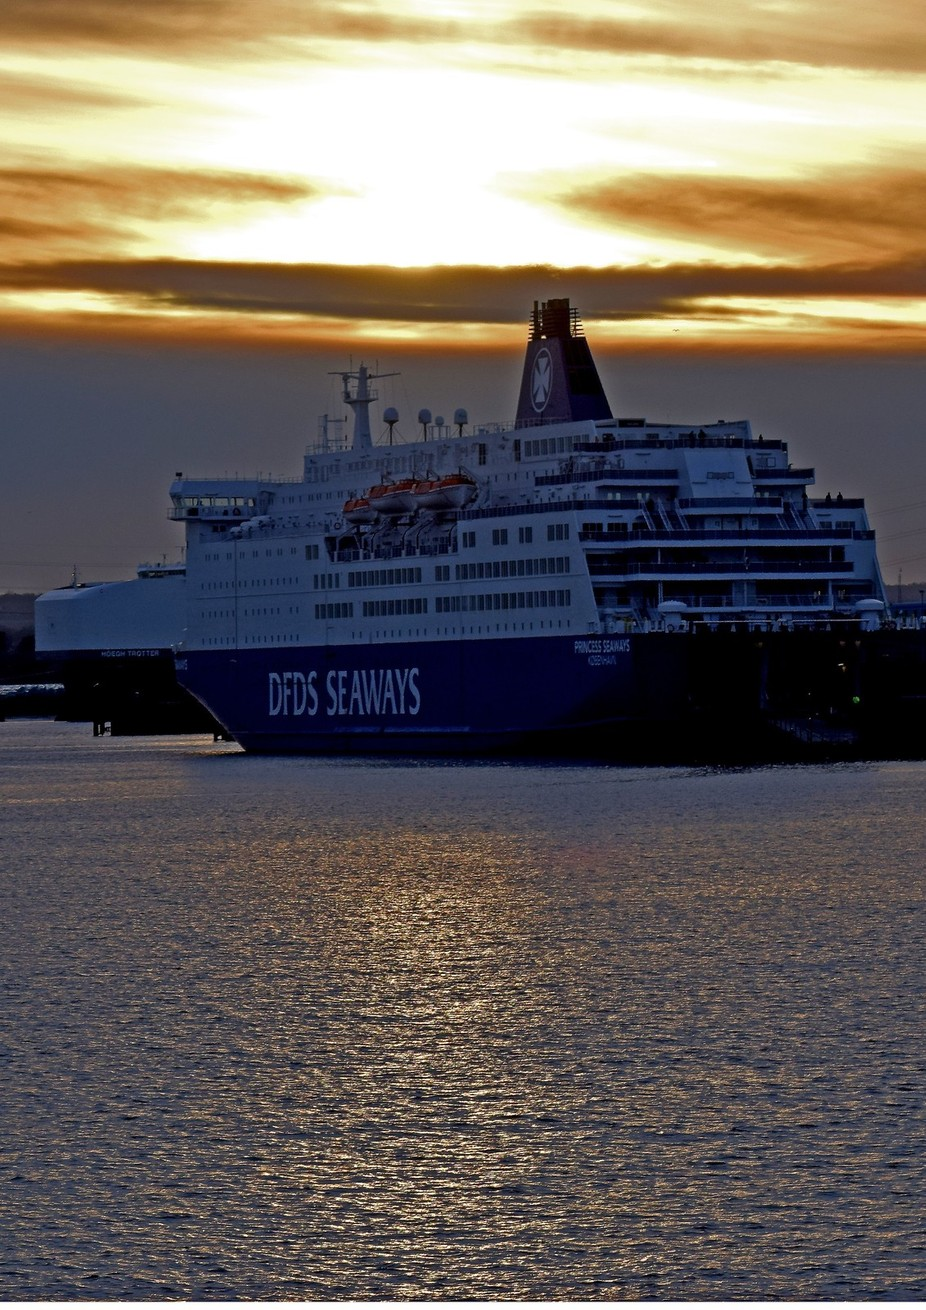 Princess Seaways preparing to depart at dusk